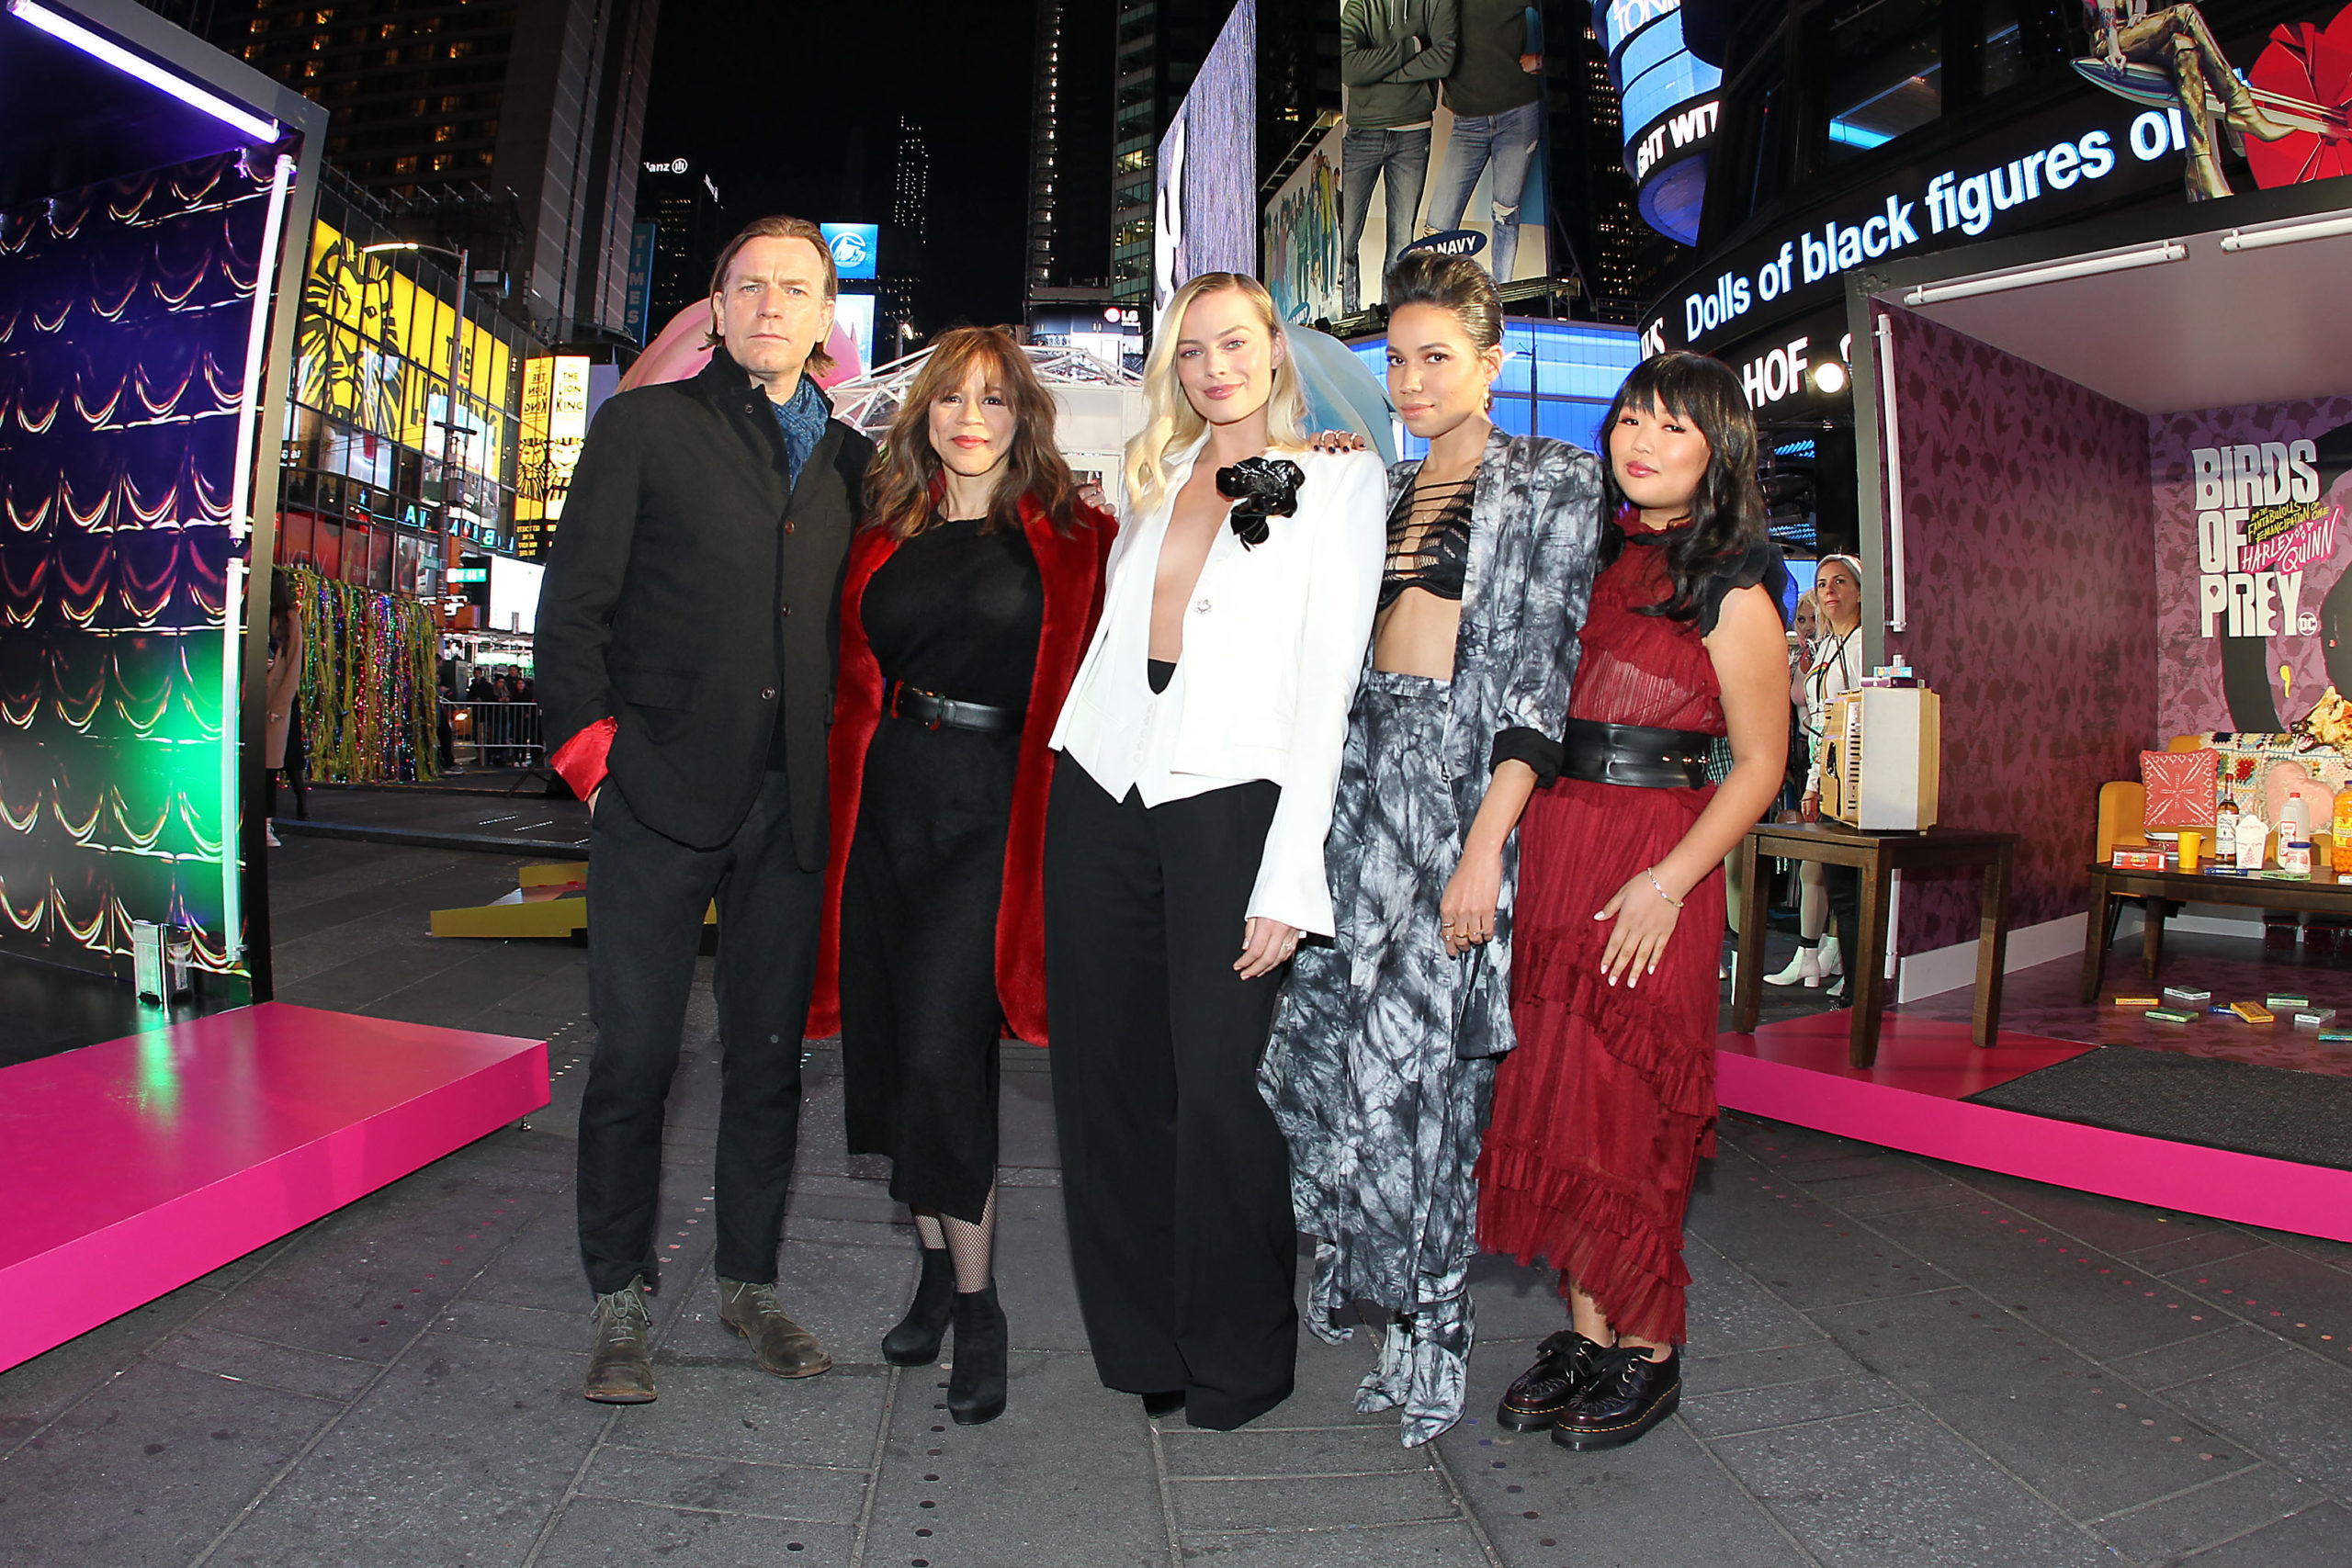 The Cast Of Birds Of Prey Attend Special Fan Experience And Screening In Nyc Beautifulballad